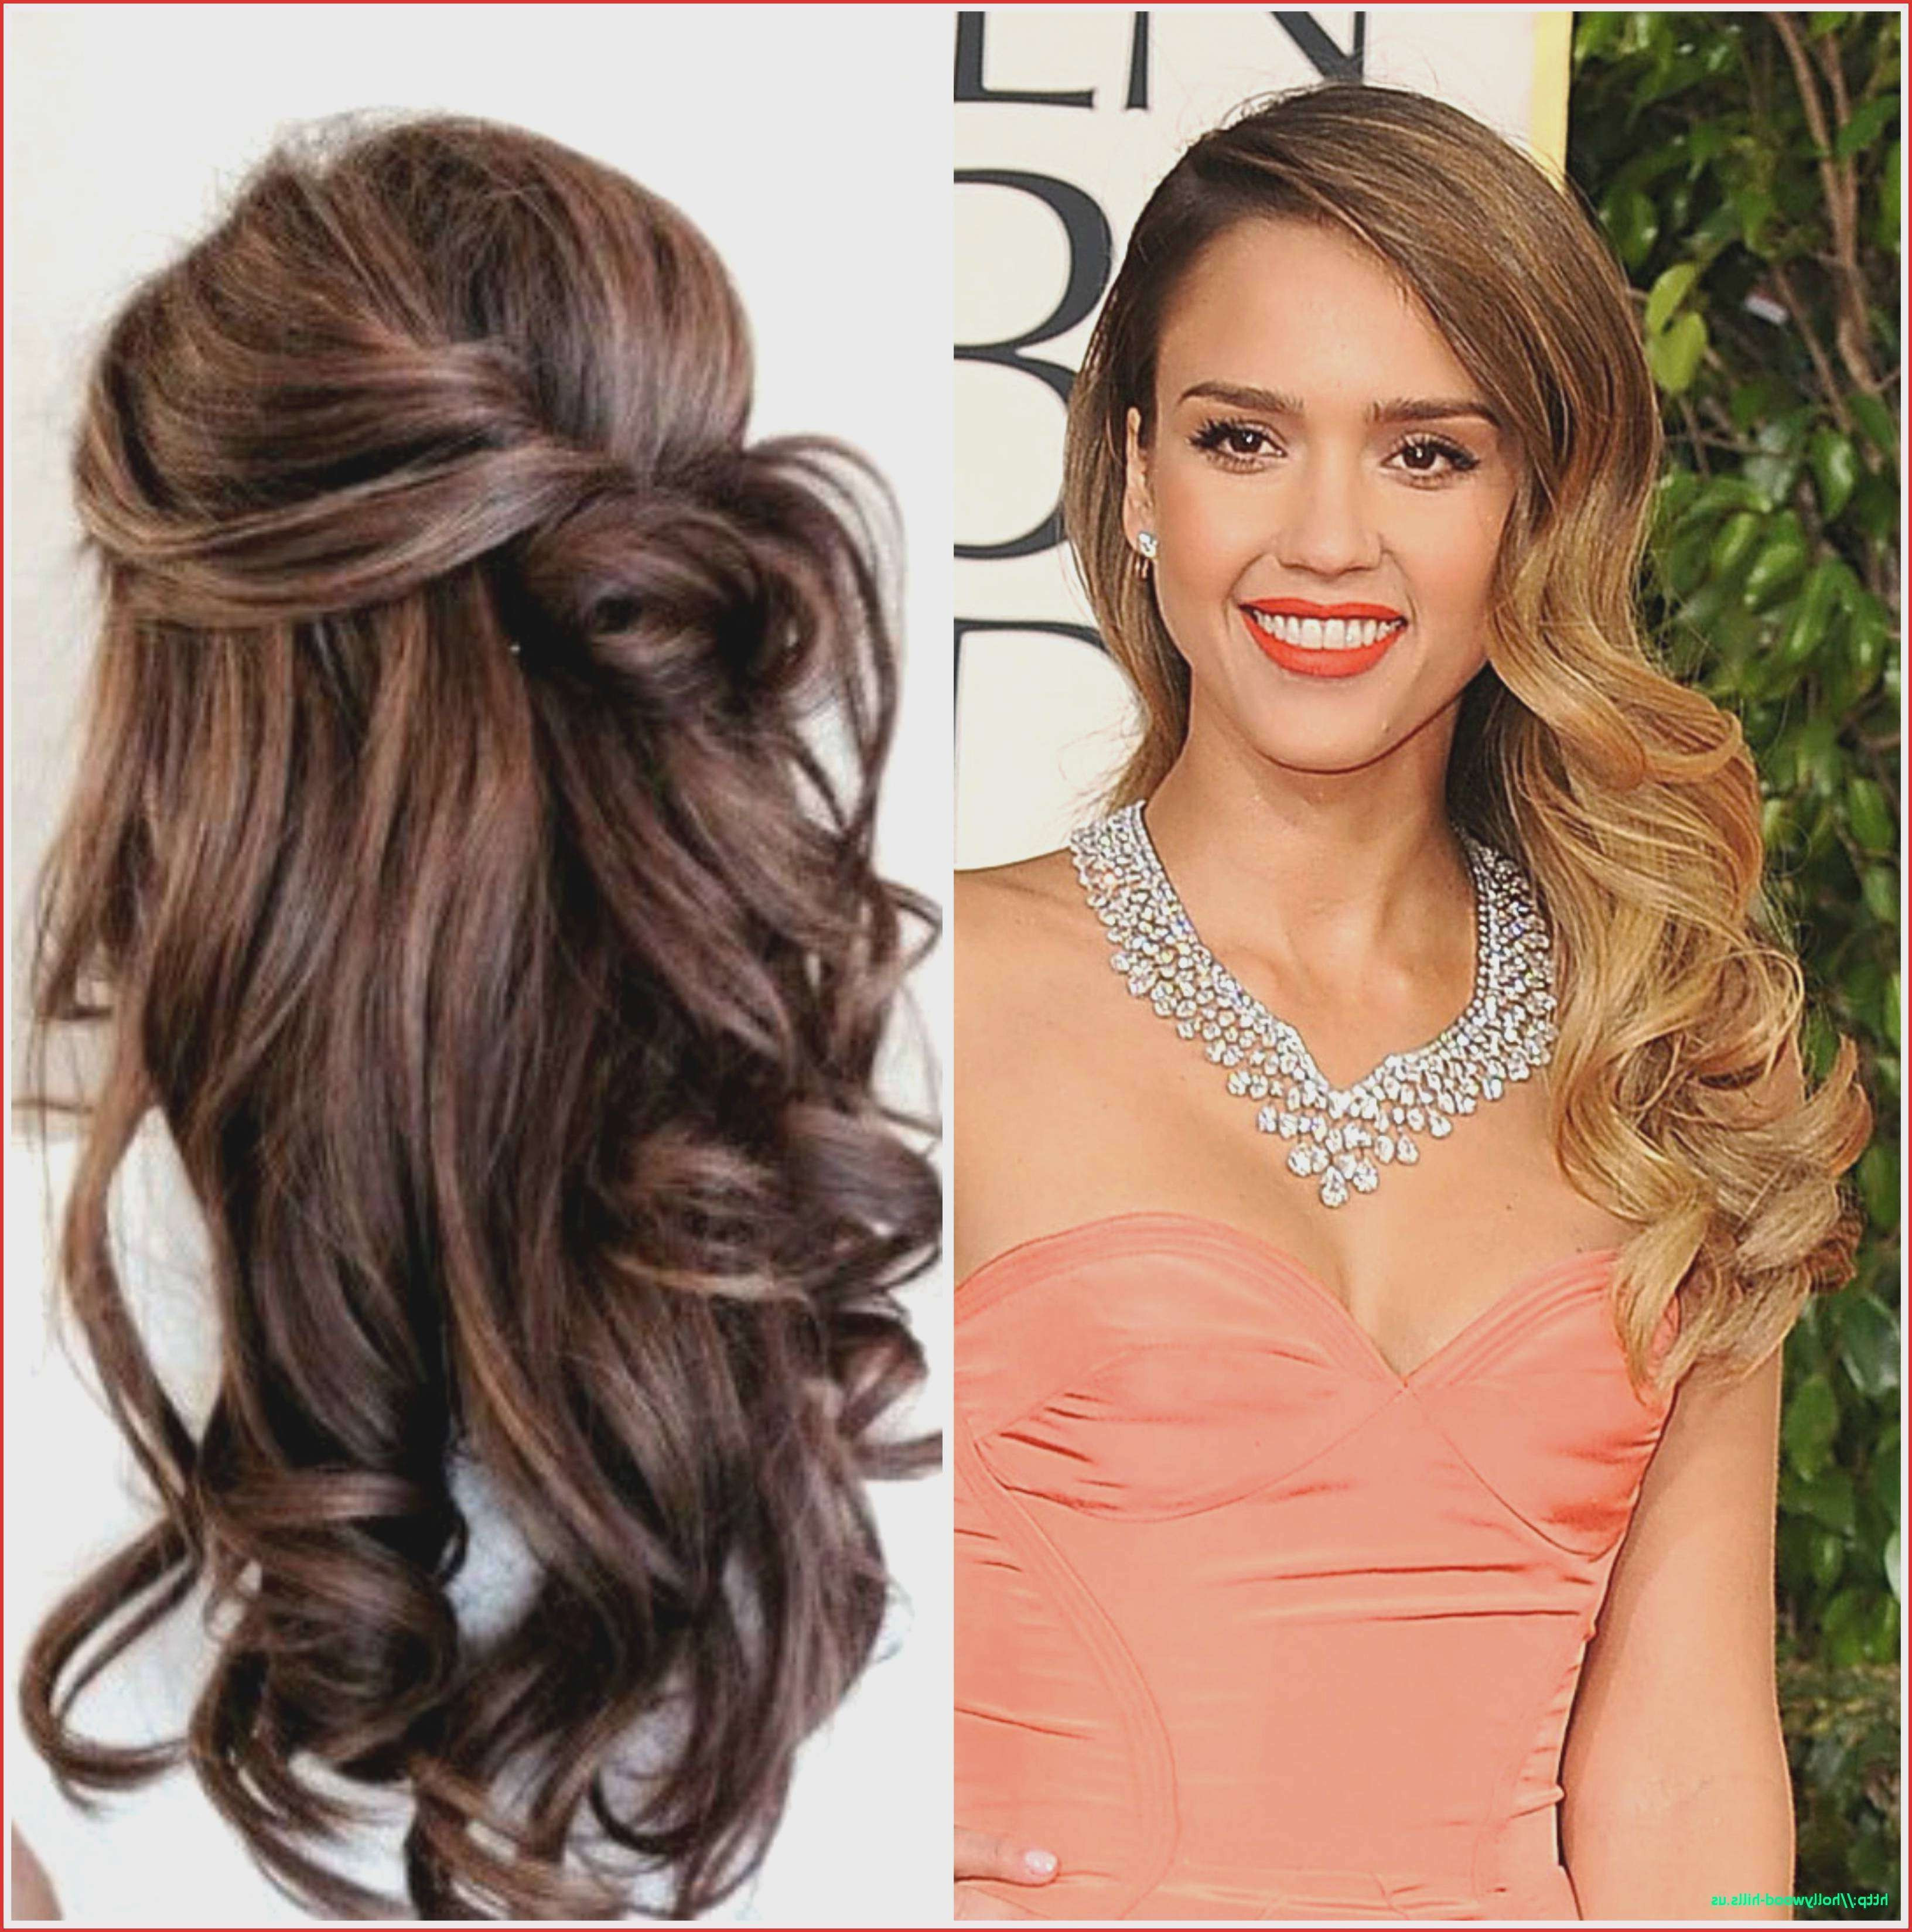 Awesome Easy Hairstyle Tutorials For Short Hair – Uternity Pertaining To Hairstyles For Short Hair For Graduation (Gallery 15 of 25)